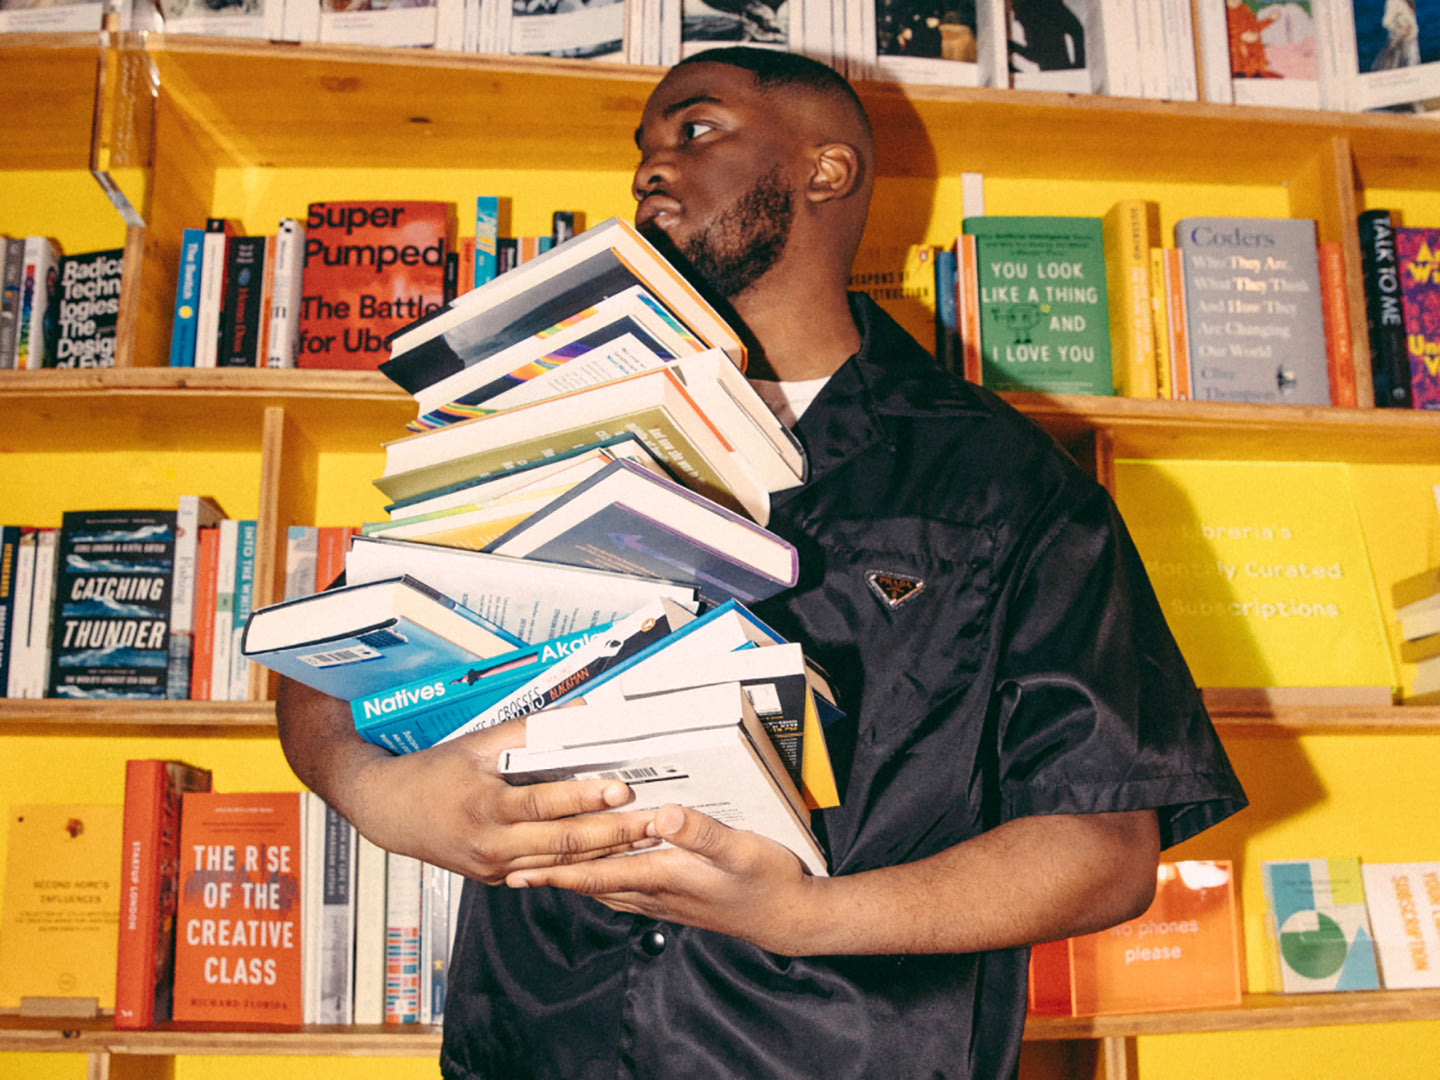 A man holding a pile of books next to a yellow bookshelf.